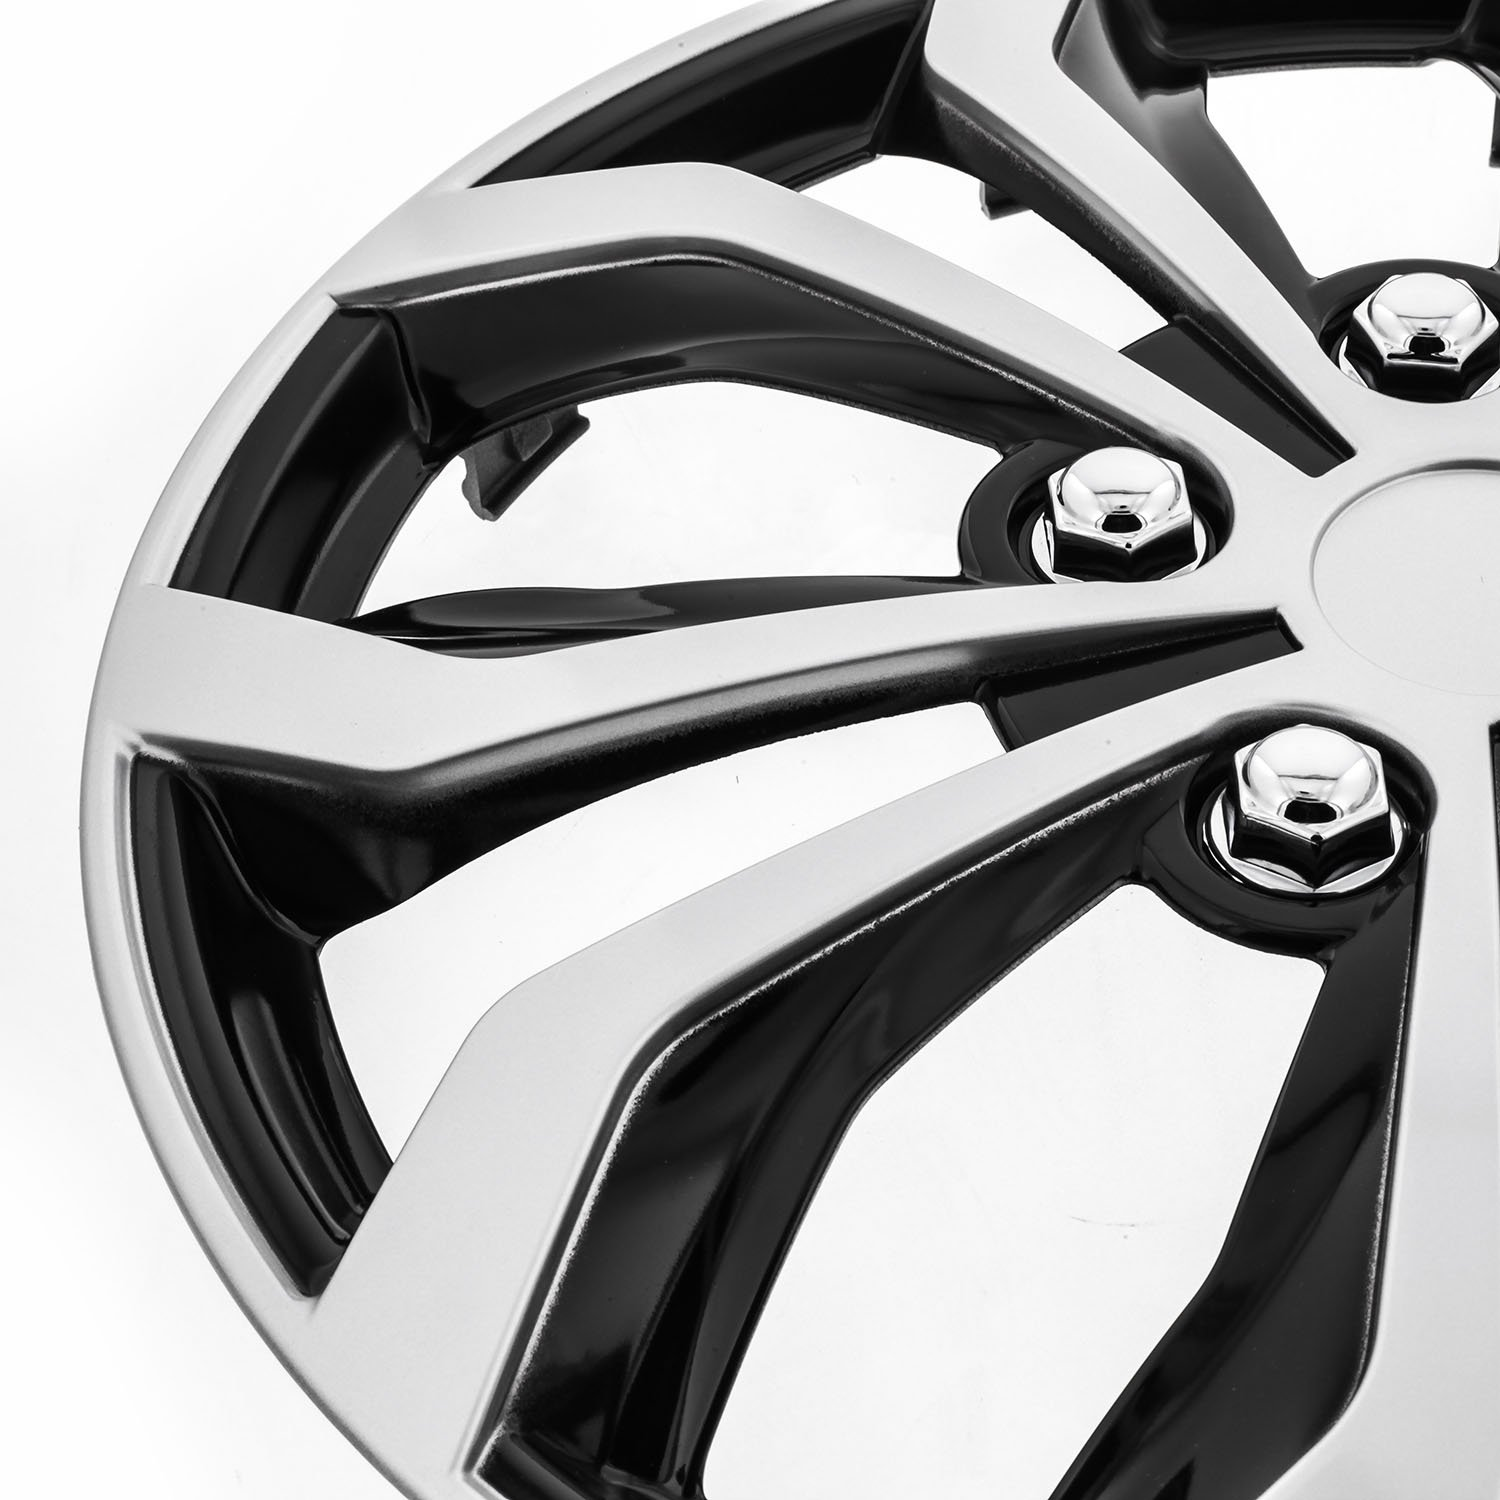 Pilot WH553-16S-BS Universal Fit Spyder Black/Silver Finish 16 Inch Wheel Covers - Set of 4 by Pilot Automotive (Image #3)